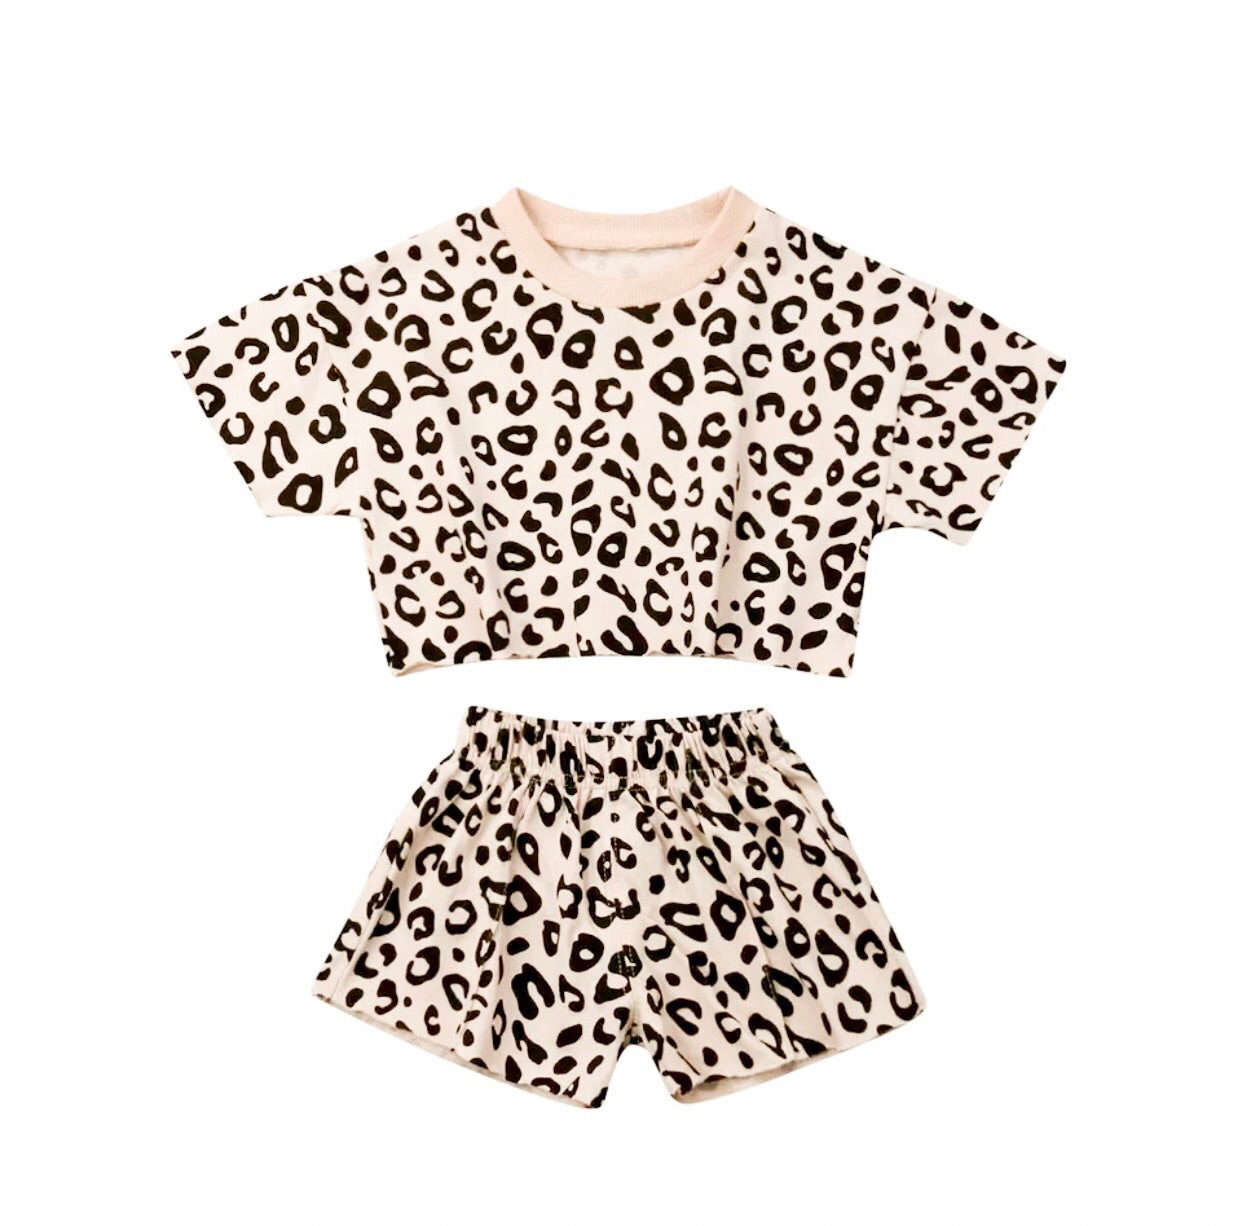 The Leopard Two Piece